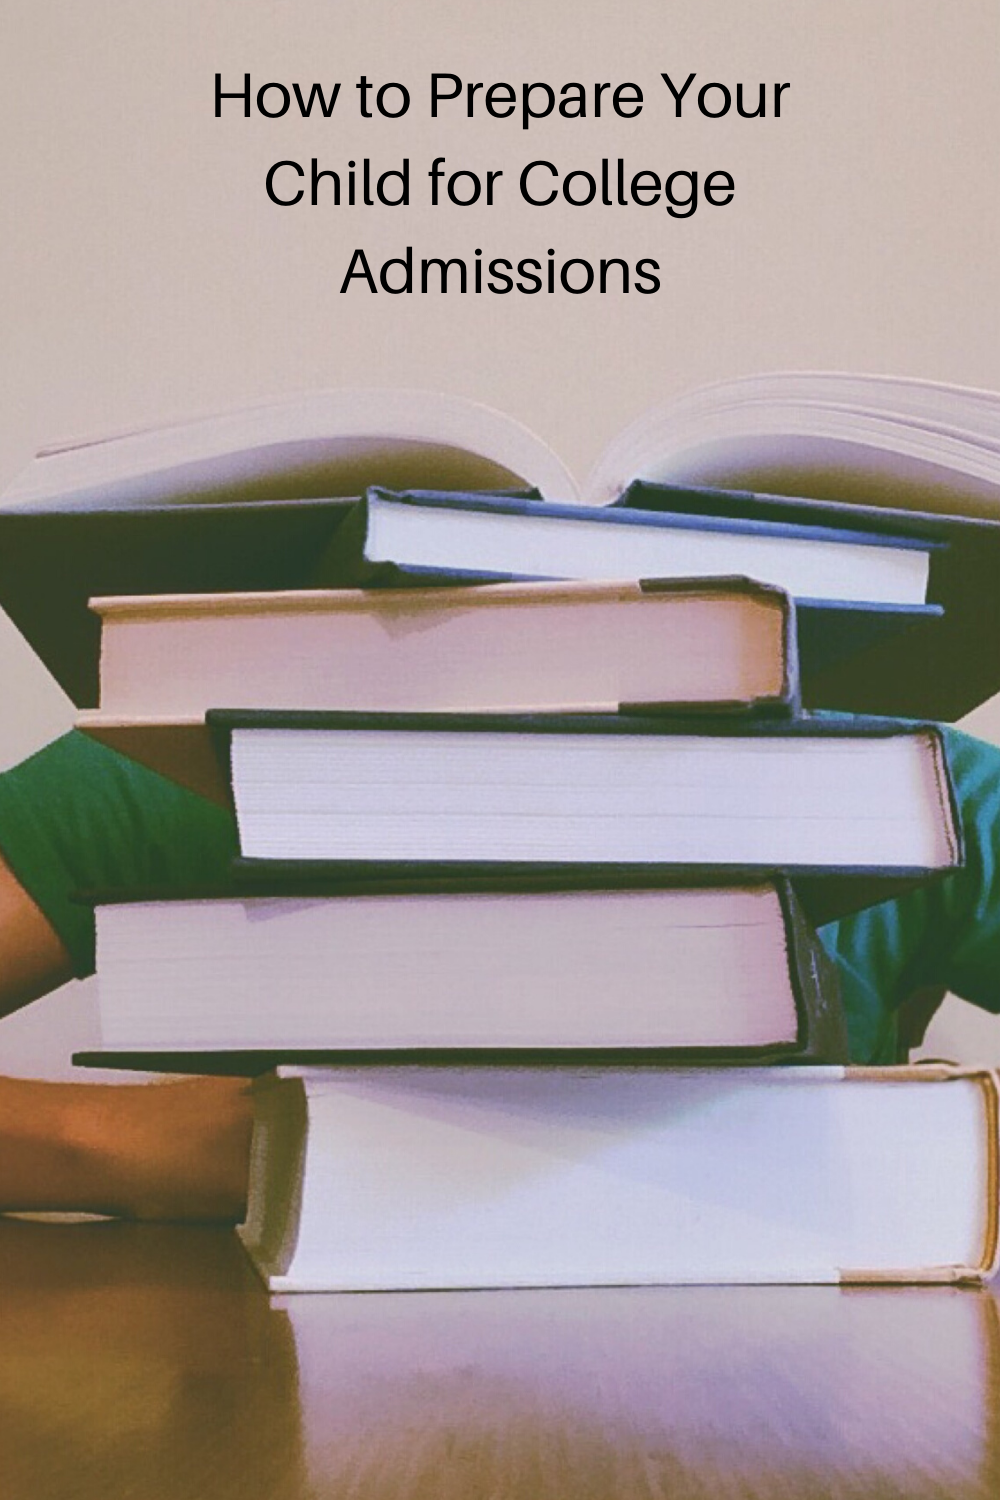 How to Prepare Your Child for College Admissions